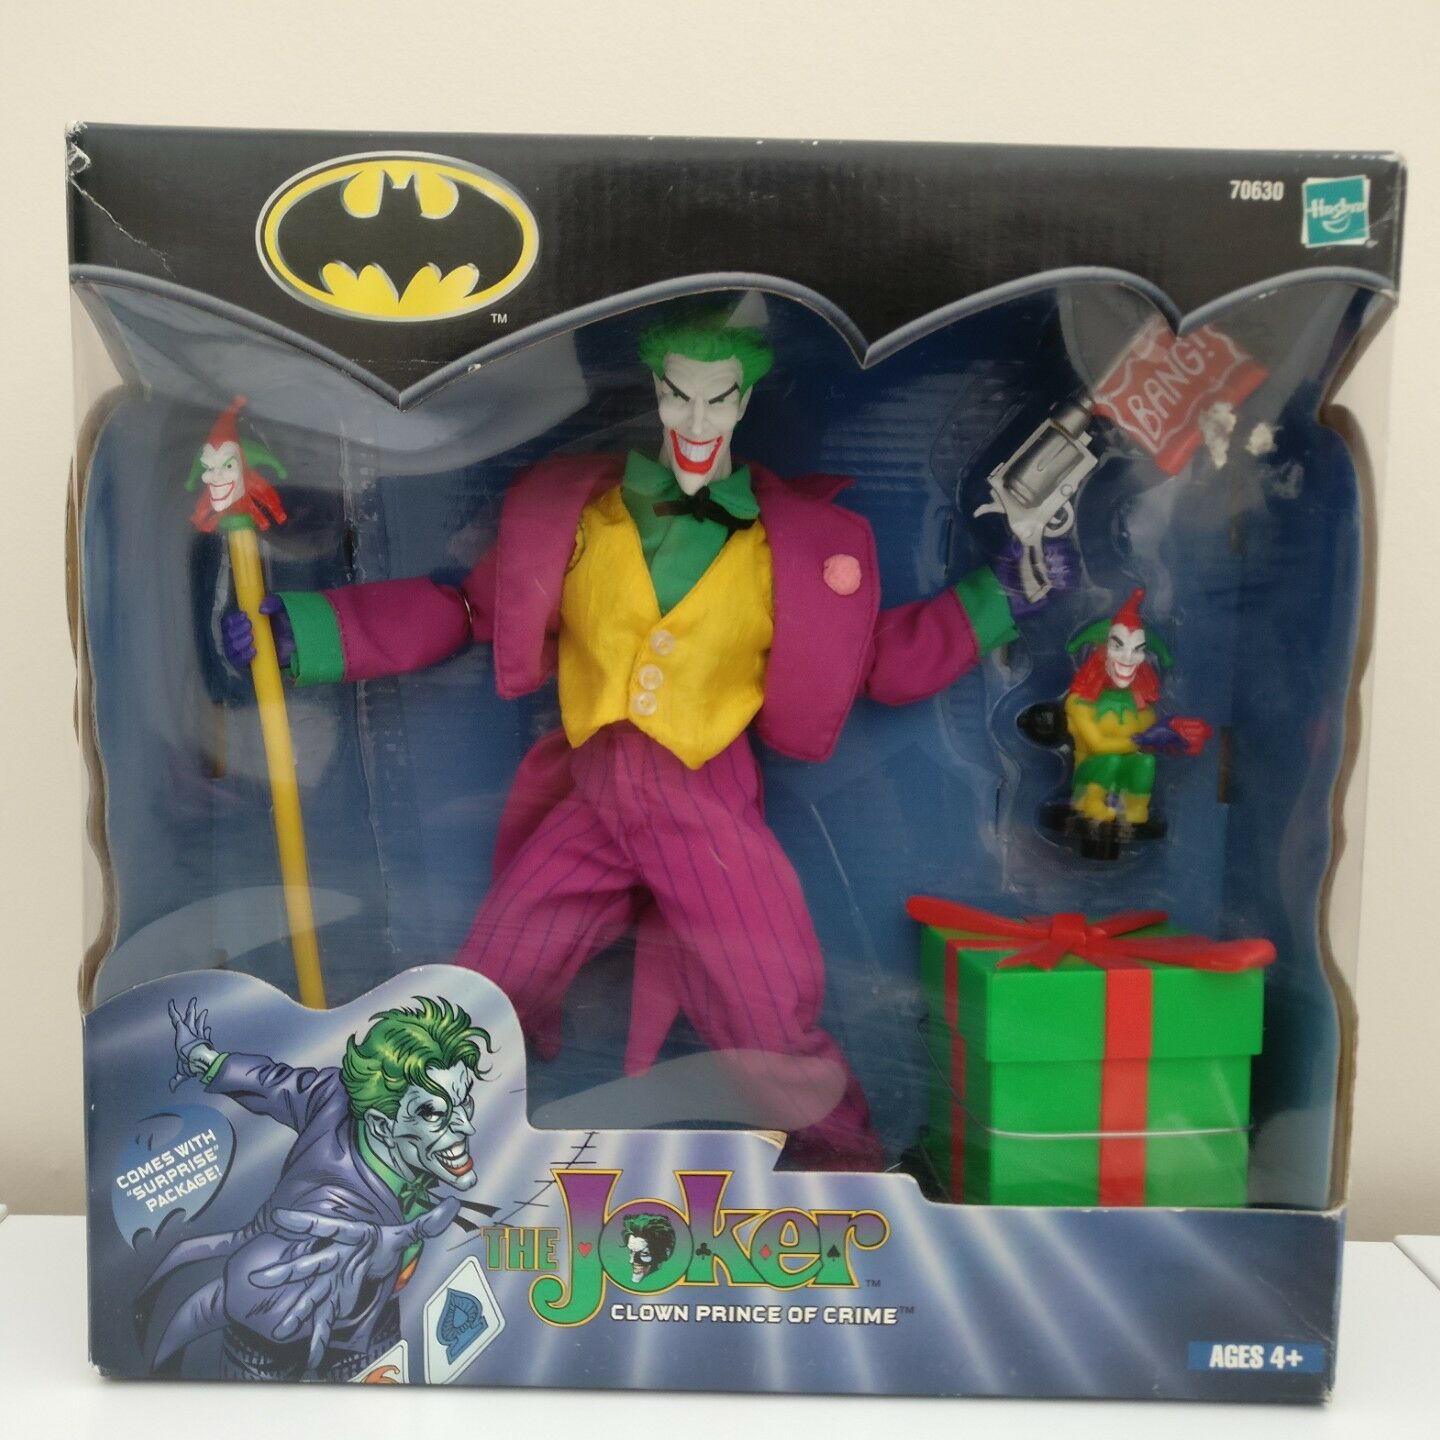 9  Batman Clown Prince of Crime Joker Figure Toy 2001 Vintage Hasbro from USA